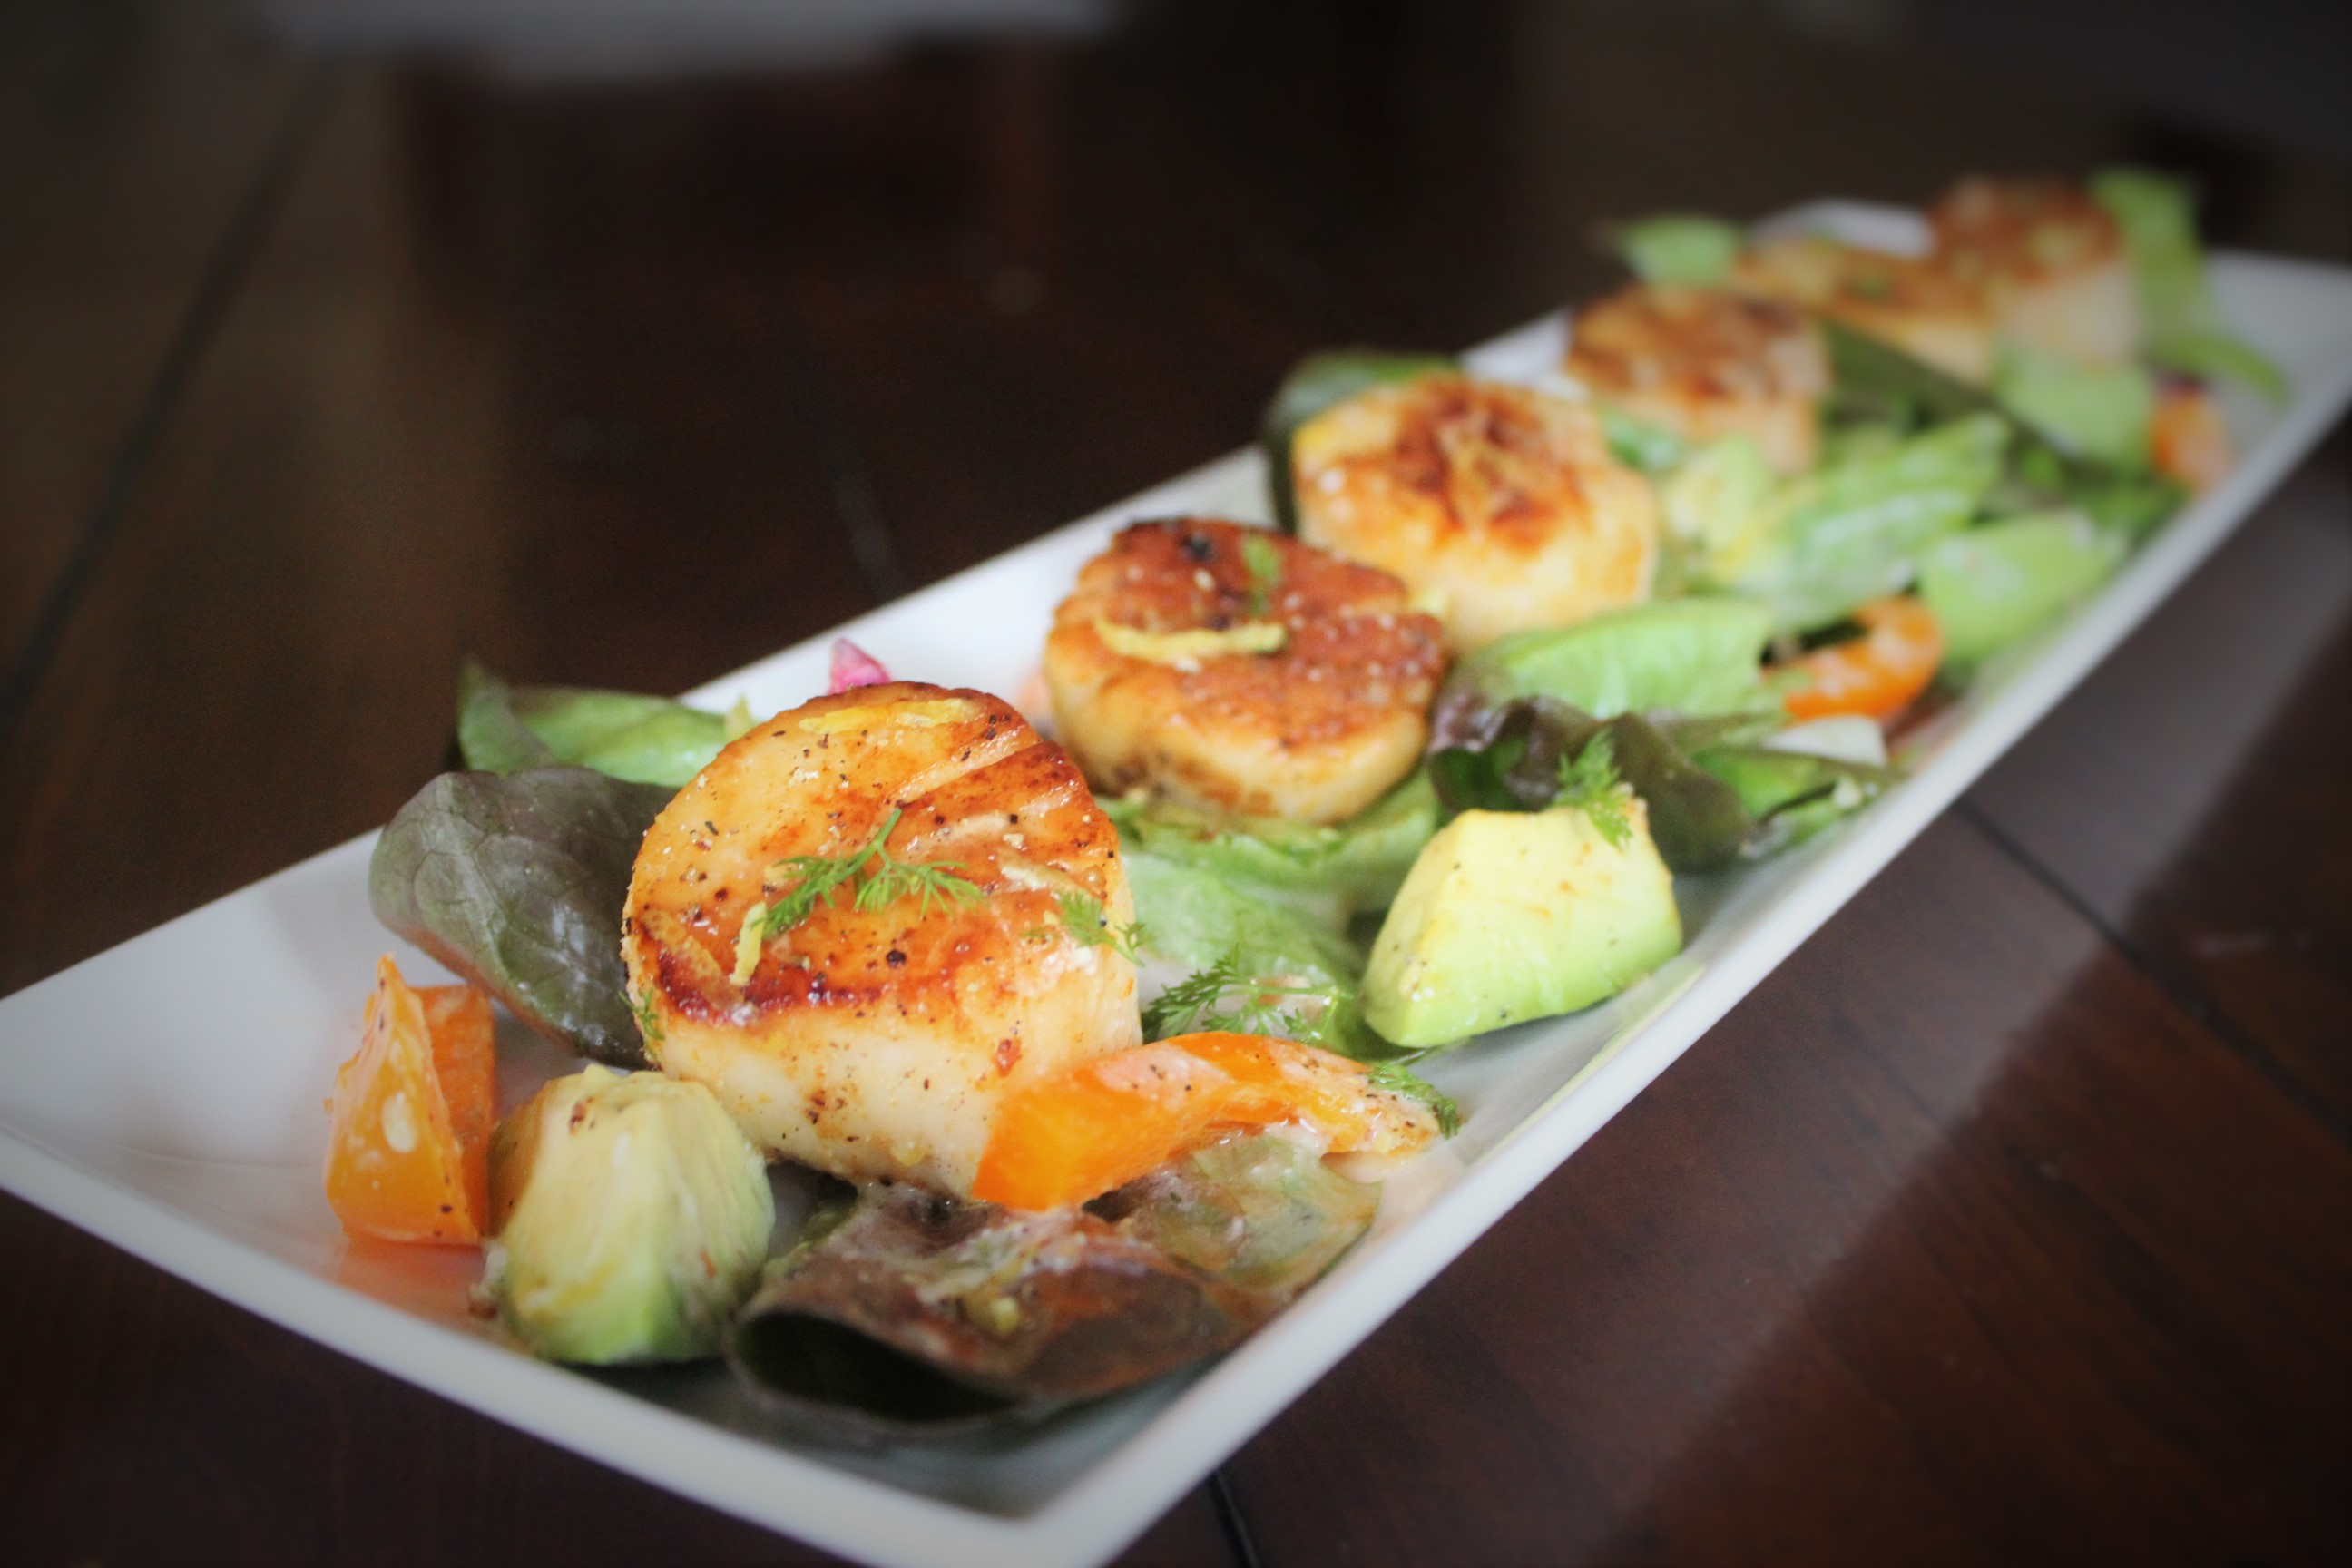 Spicy Scallop Salad with Creamy Lemon Dressing